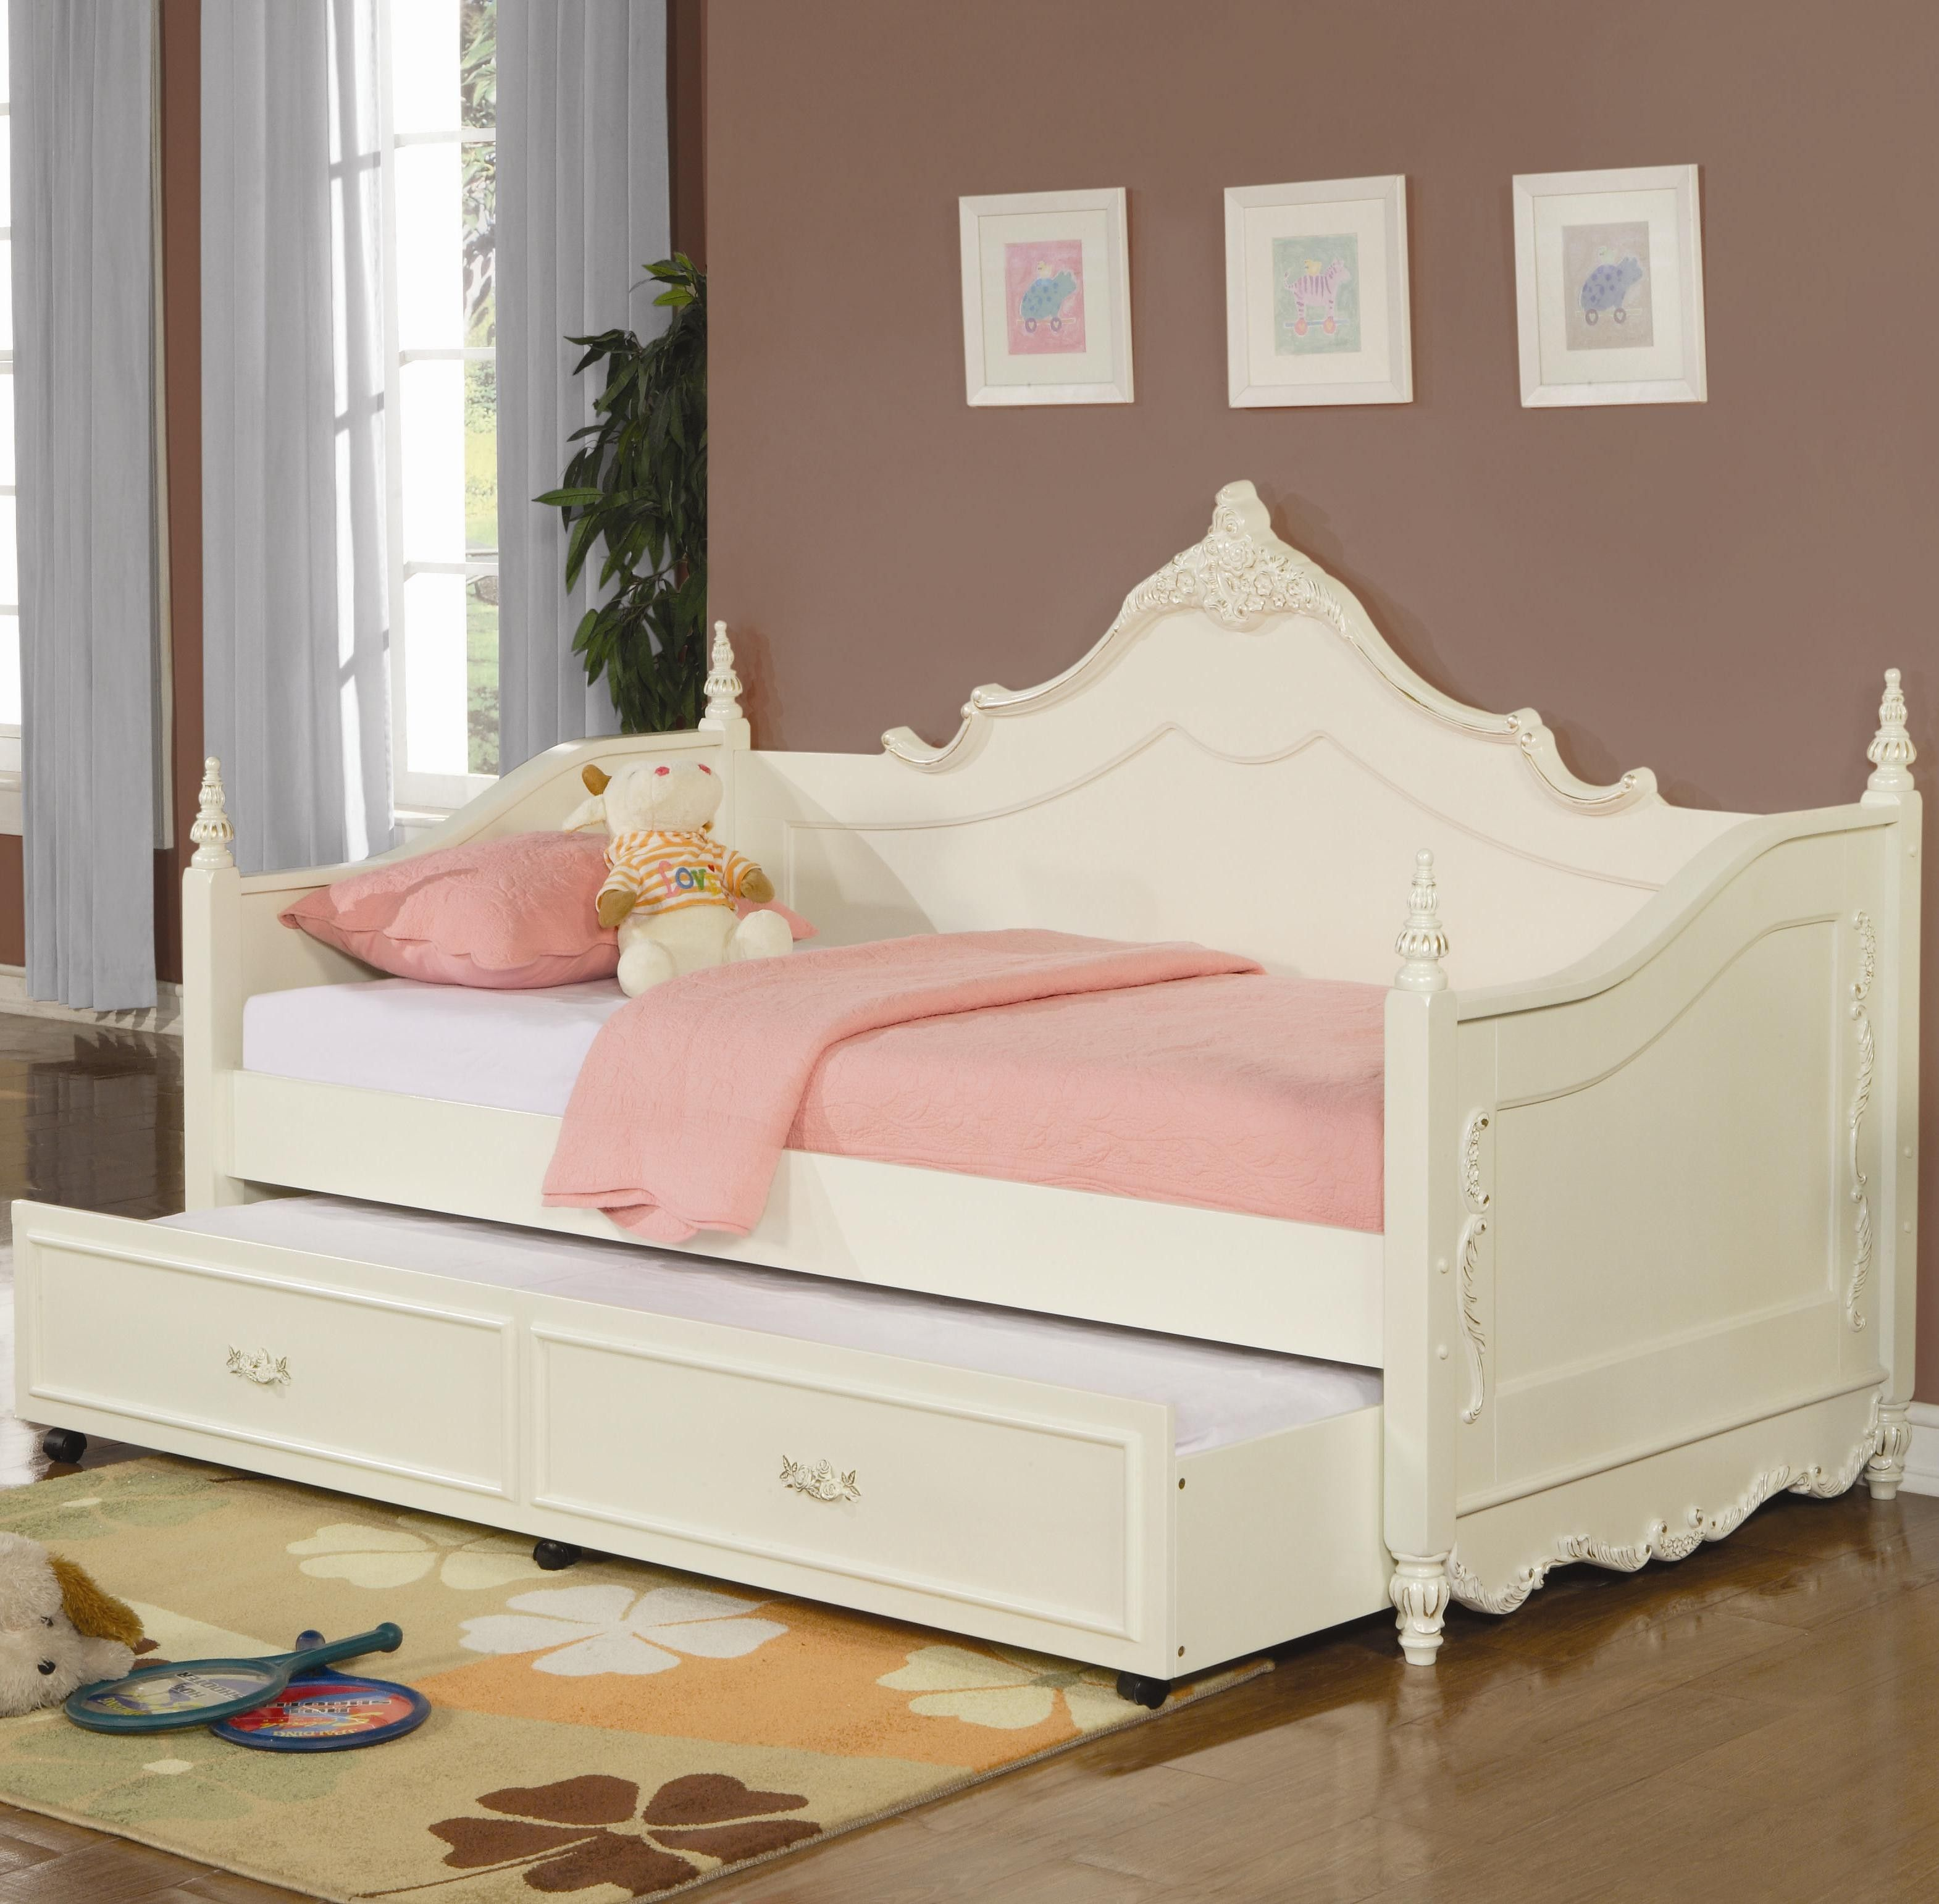 Daybed Trundle Ikea | Home Decor | Pinterest